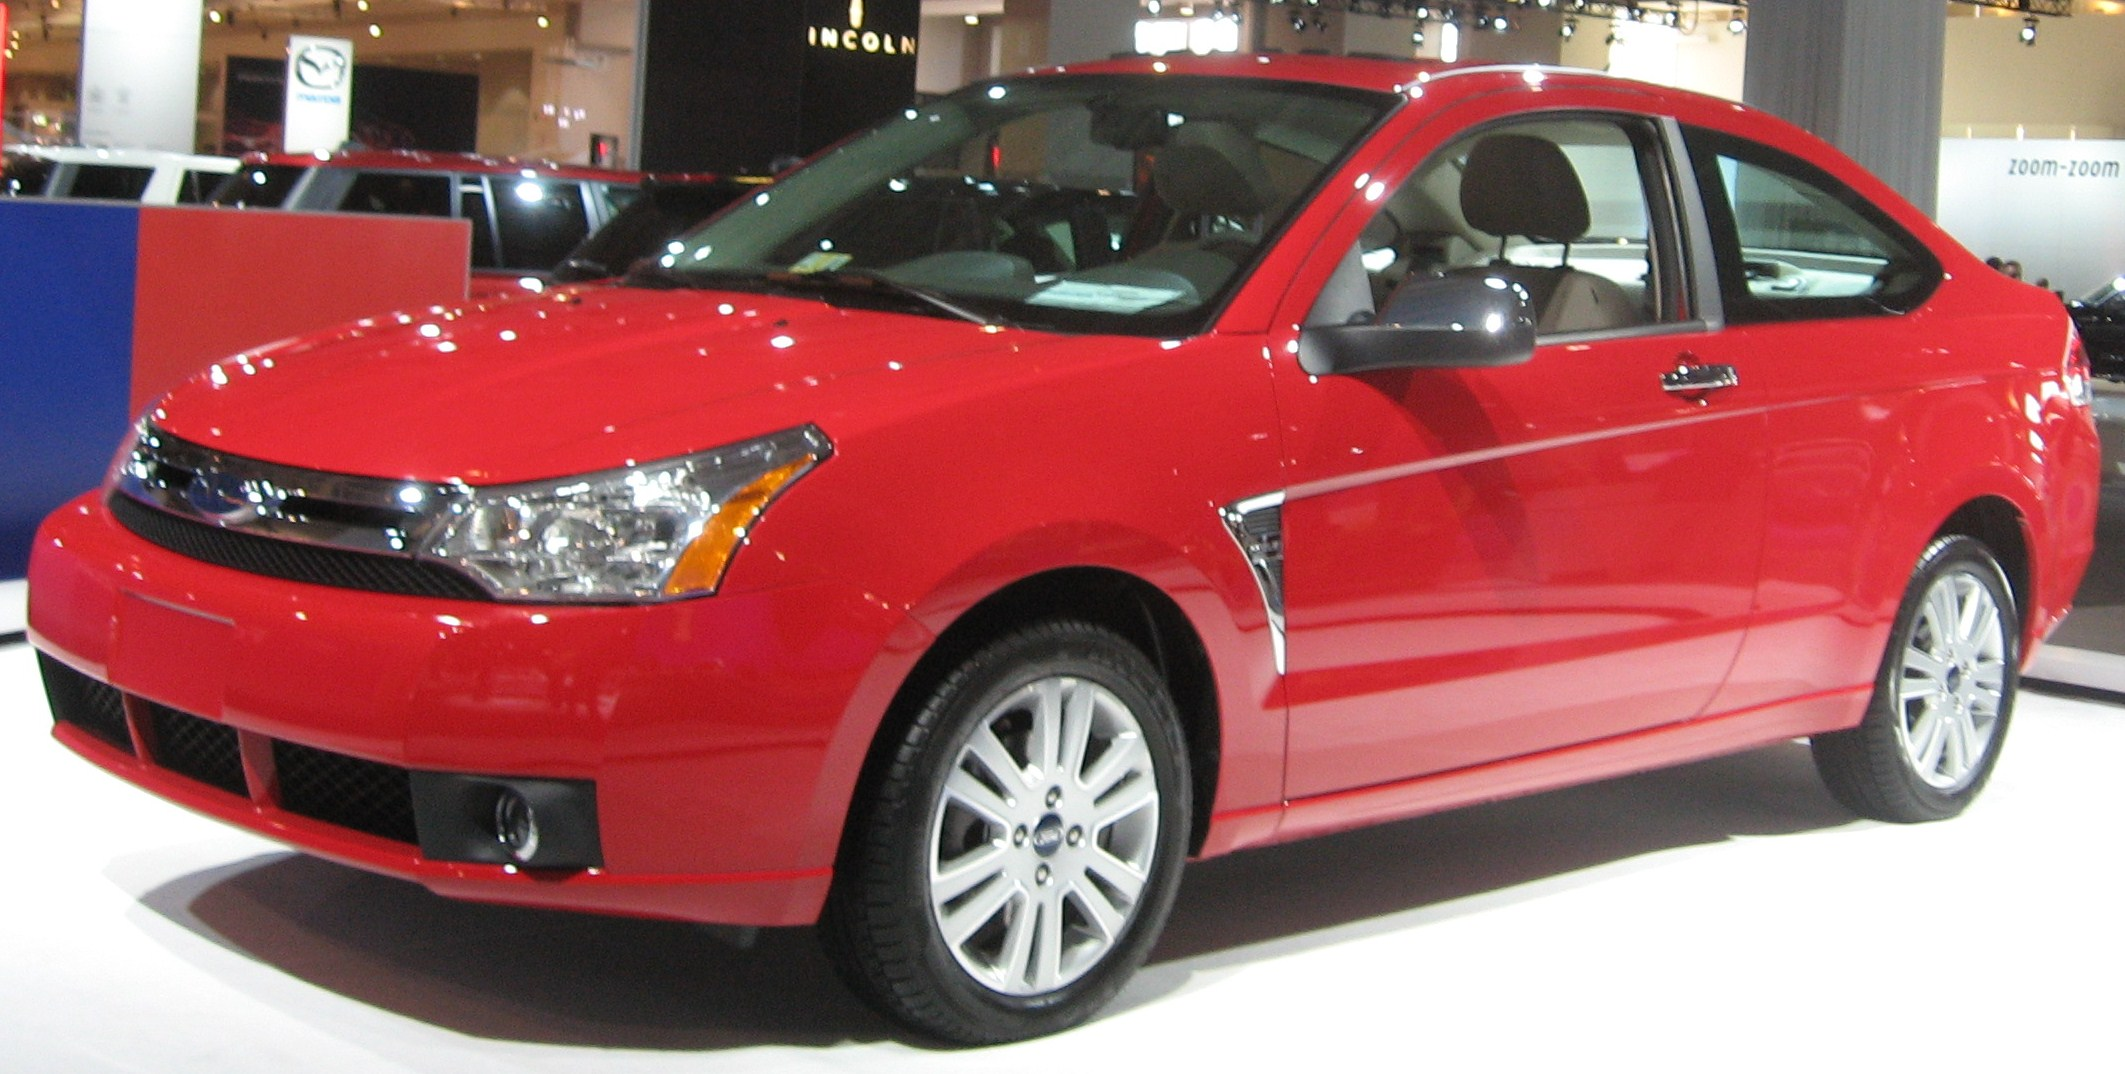 2008 ford focus image 14